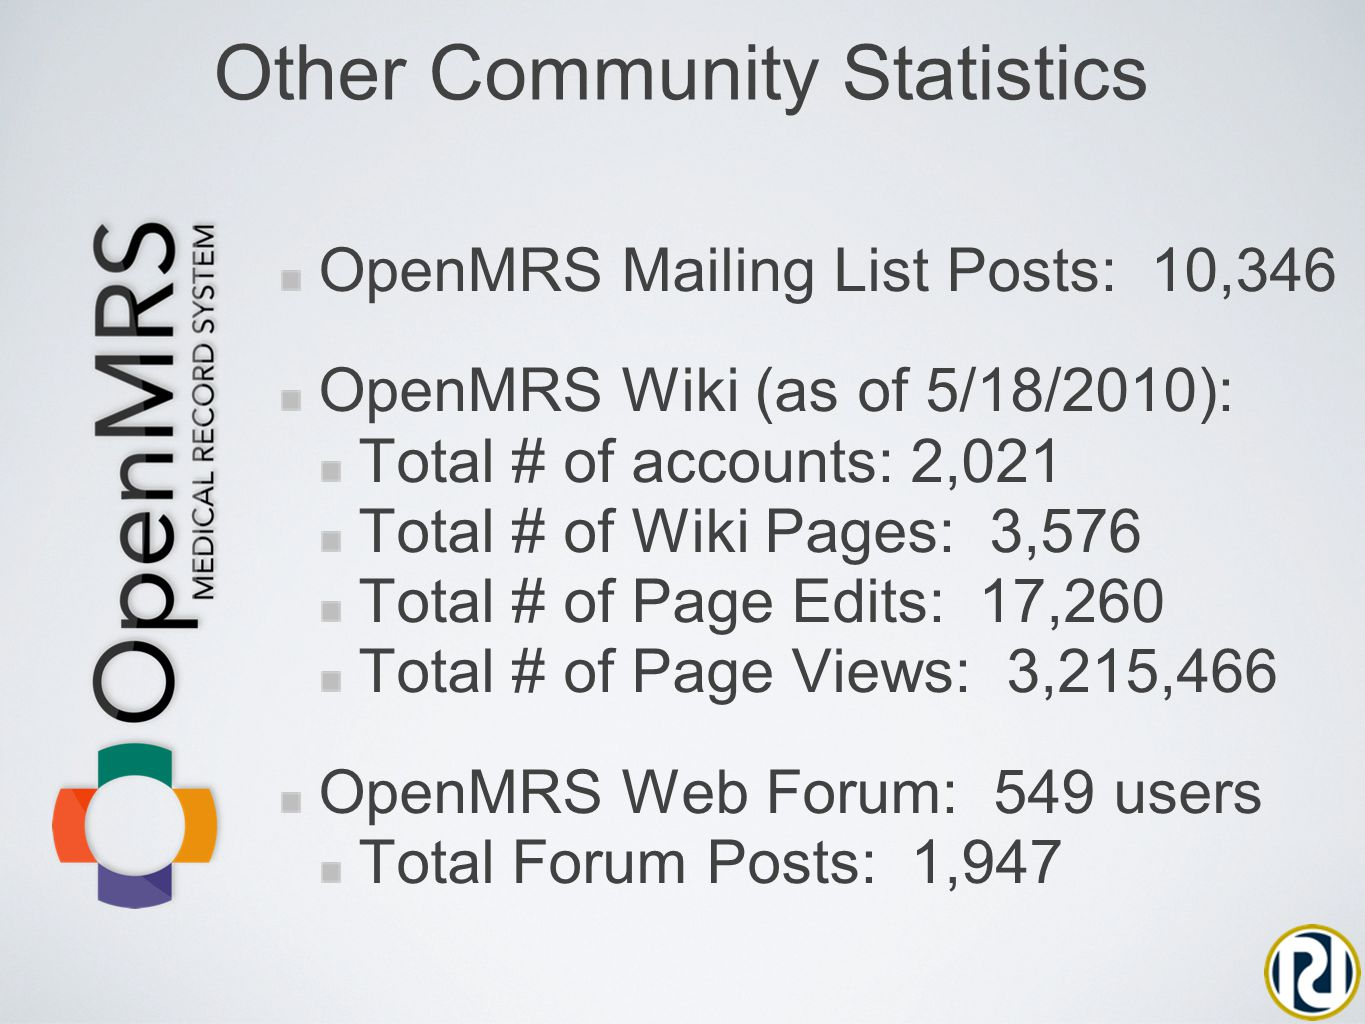 OpenMRS Mailing List Posts: 10,346 OpenMRS Wiki (as of 5/18/2010): Total # of accounts: 2,021 Total # of Wiki Pages: 3,576 Total # of Page Edits: 17,260 Total # of Page Views: 3,215,466 OpenMRS Web Forum: 549 users Total Forum Posts: 1,947 Other Community Statistics